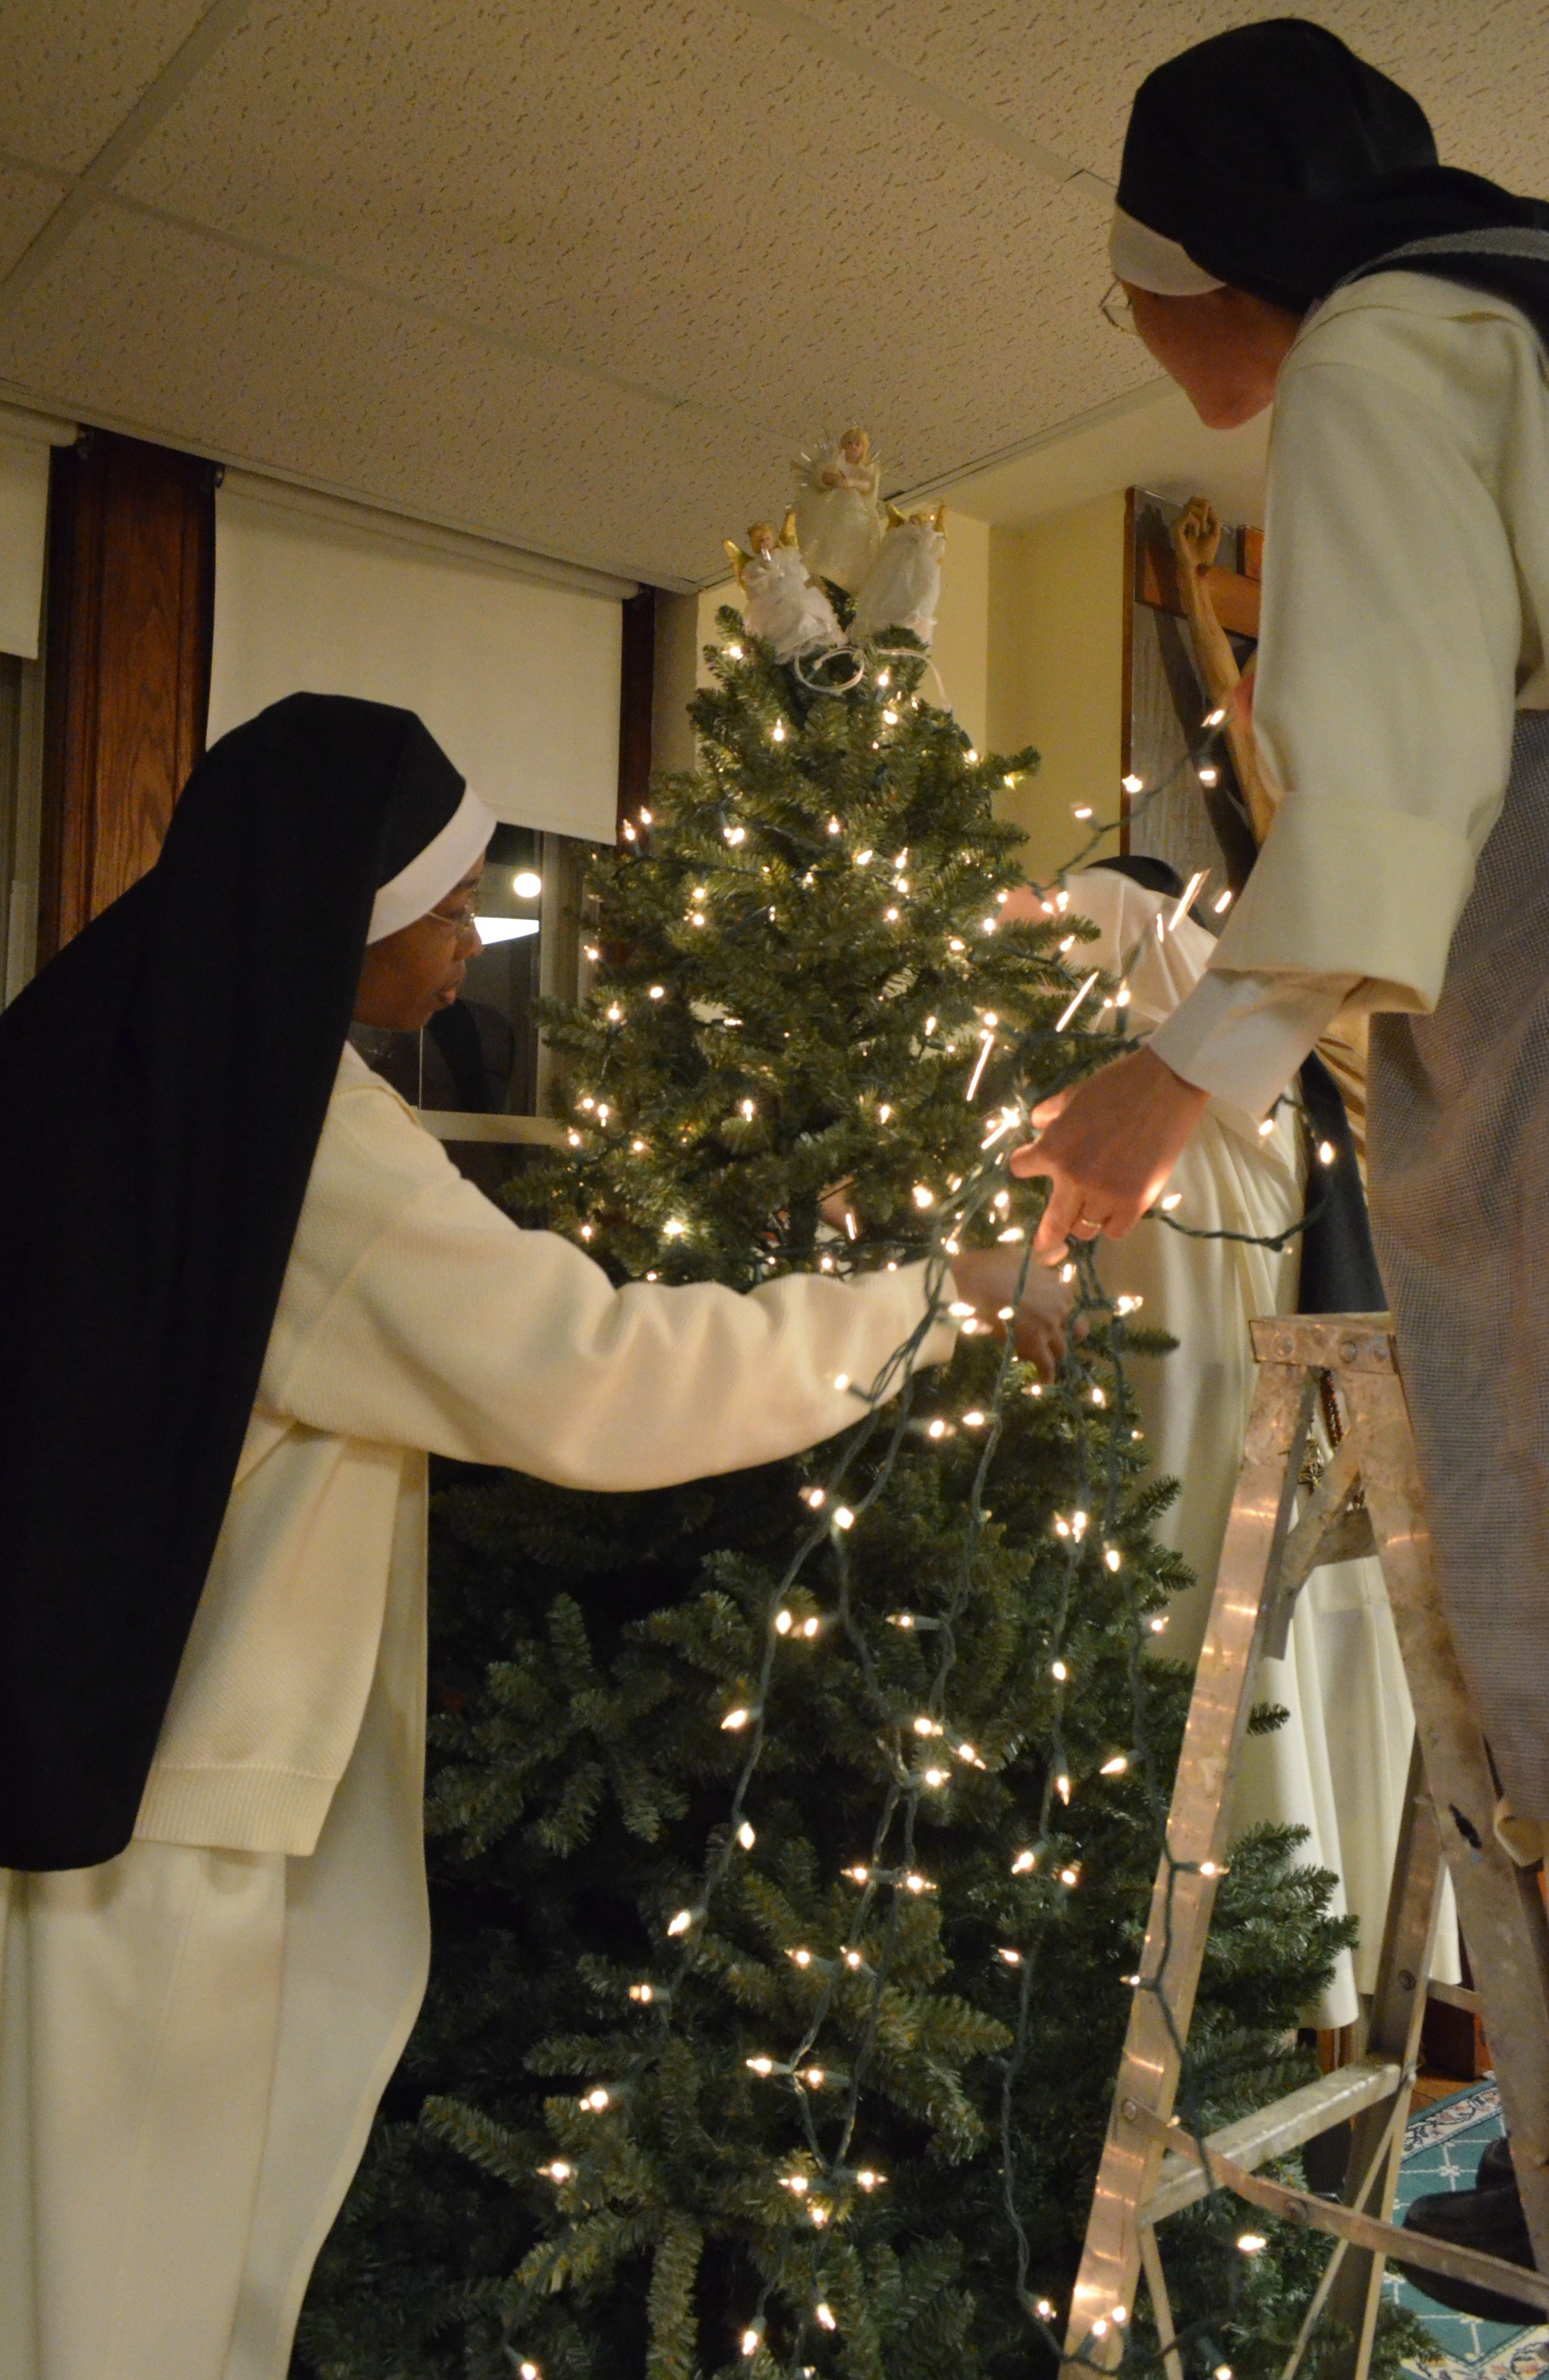 How many nuns does it take to string lights on a Christmas tree??